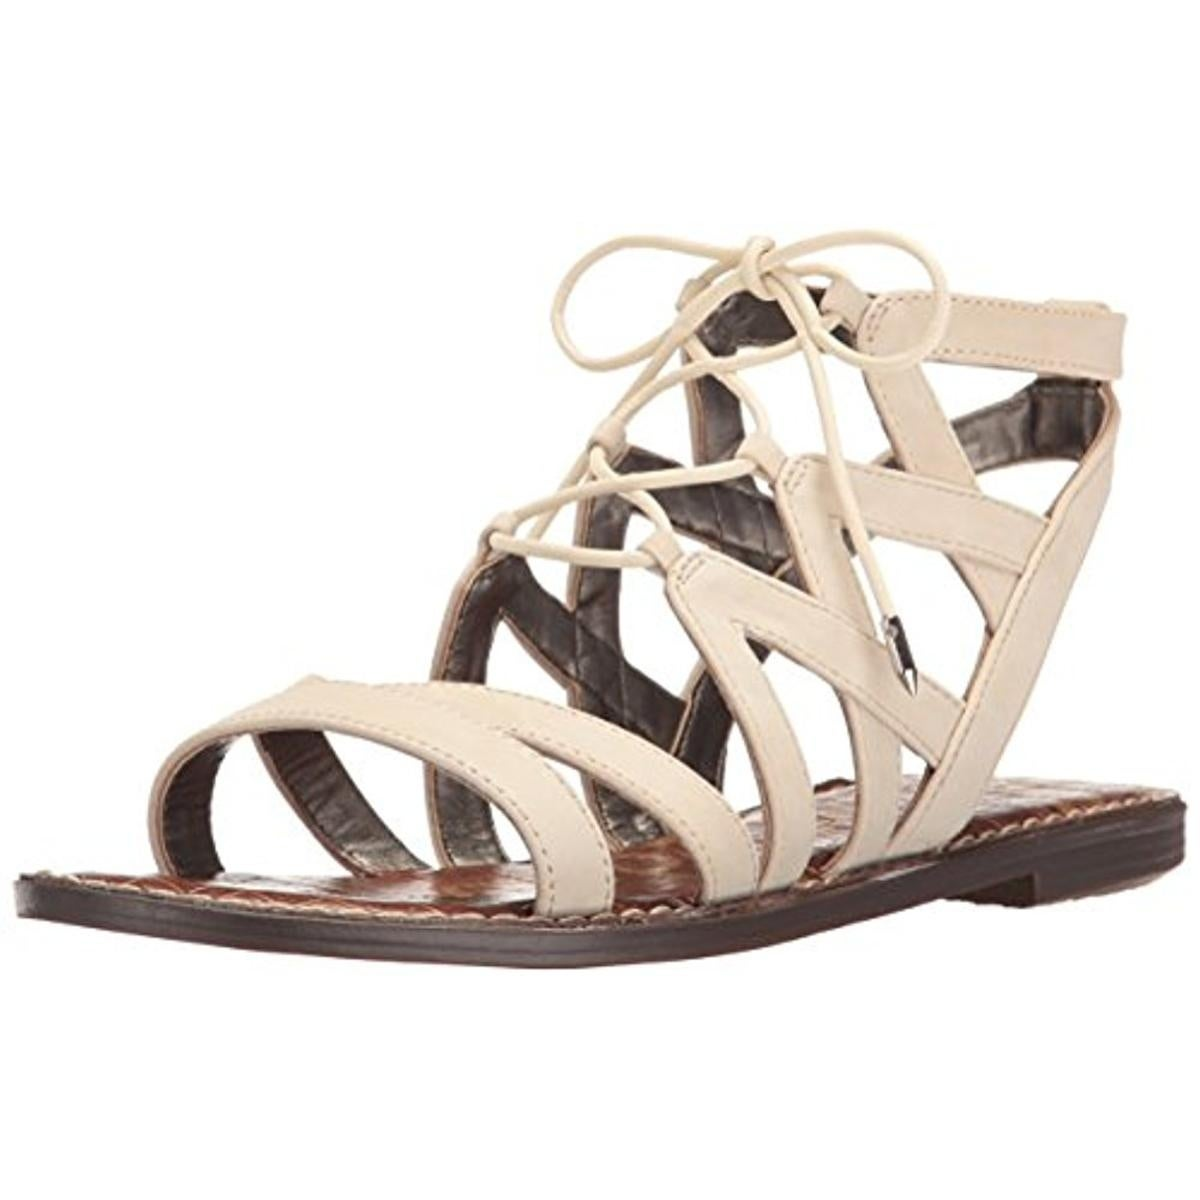 7a8c58d5b4f Shop Sam Edelman Womens Gemma Gladiator Sandals Criss-Cross Front Lace Up -  Free Shipping On Orders Over  45 - Overstock - 13555618